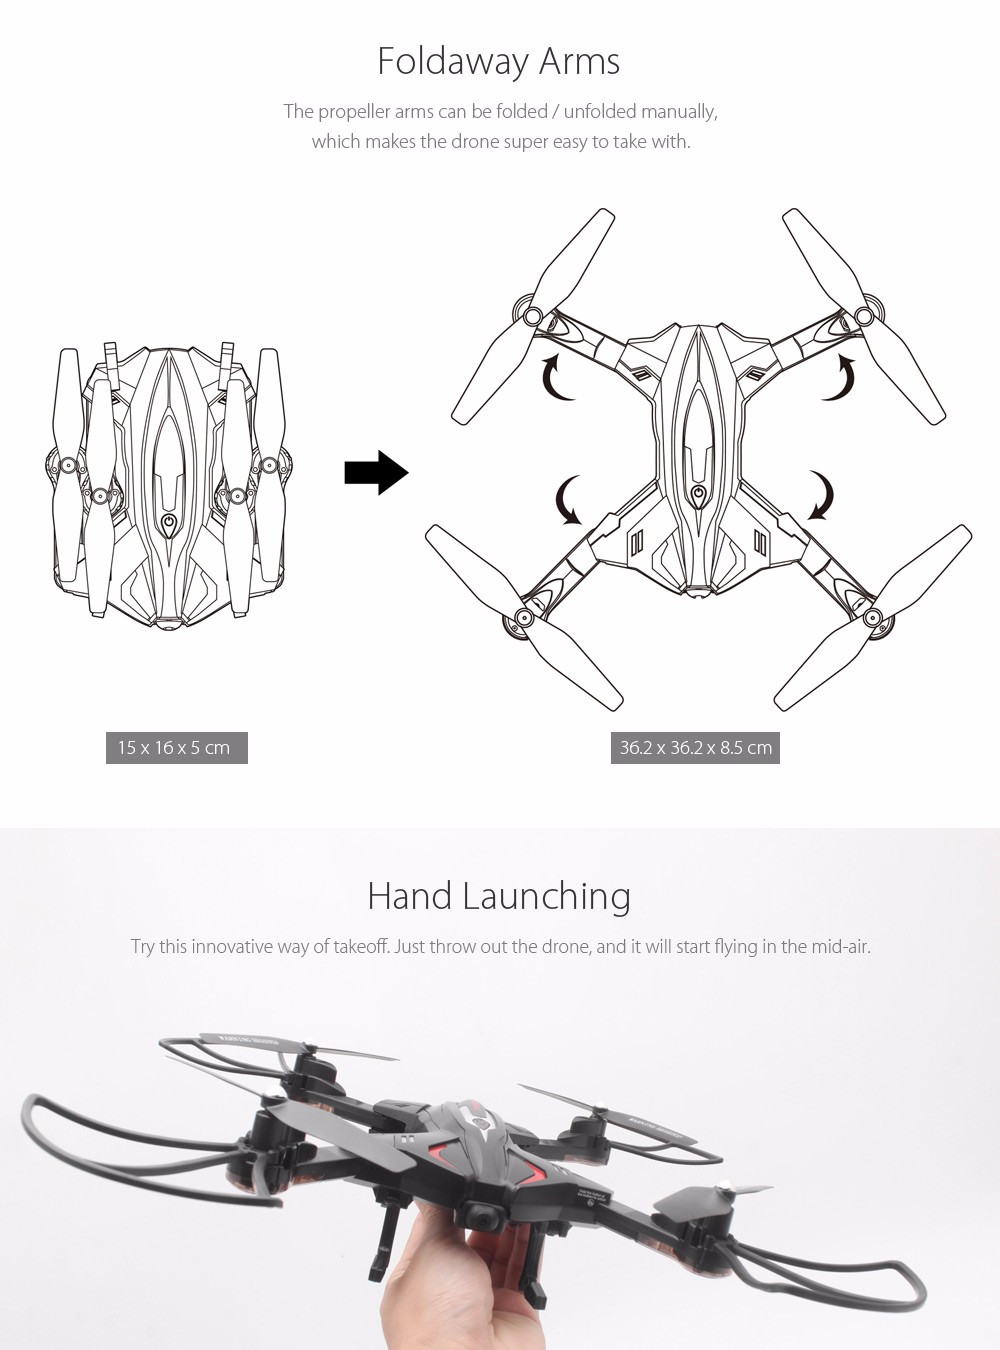 Skytech TK110HW WIFI FPV With 720P HD Camera Foldable 2.4GHz 6 Axis Gyro RC Quadcopter RTF - Photo: 2